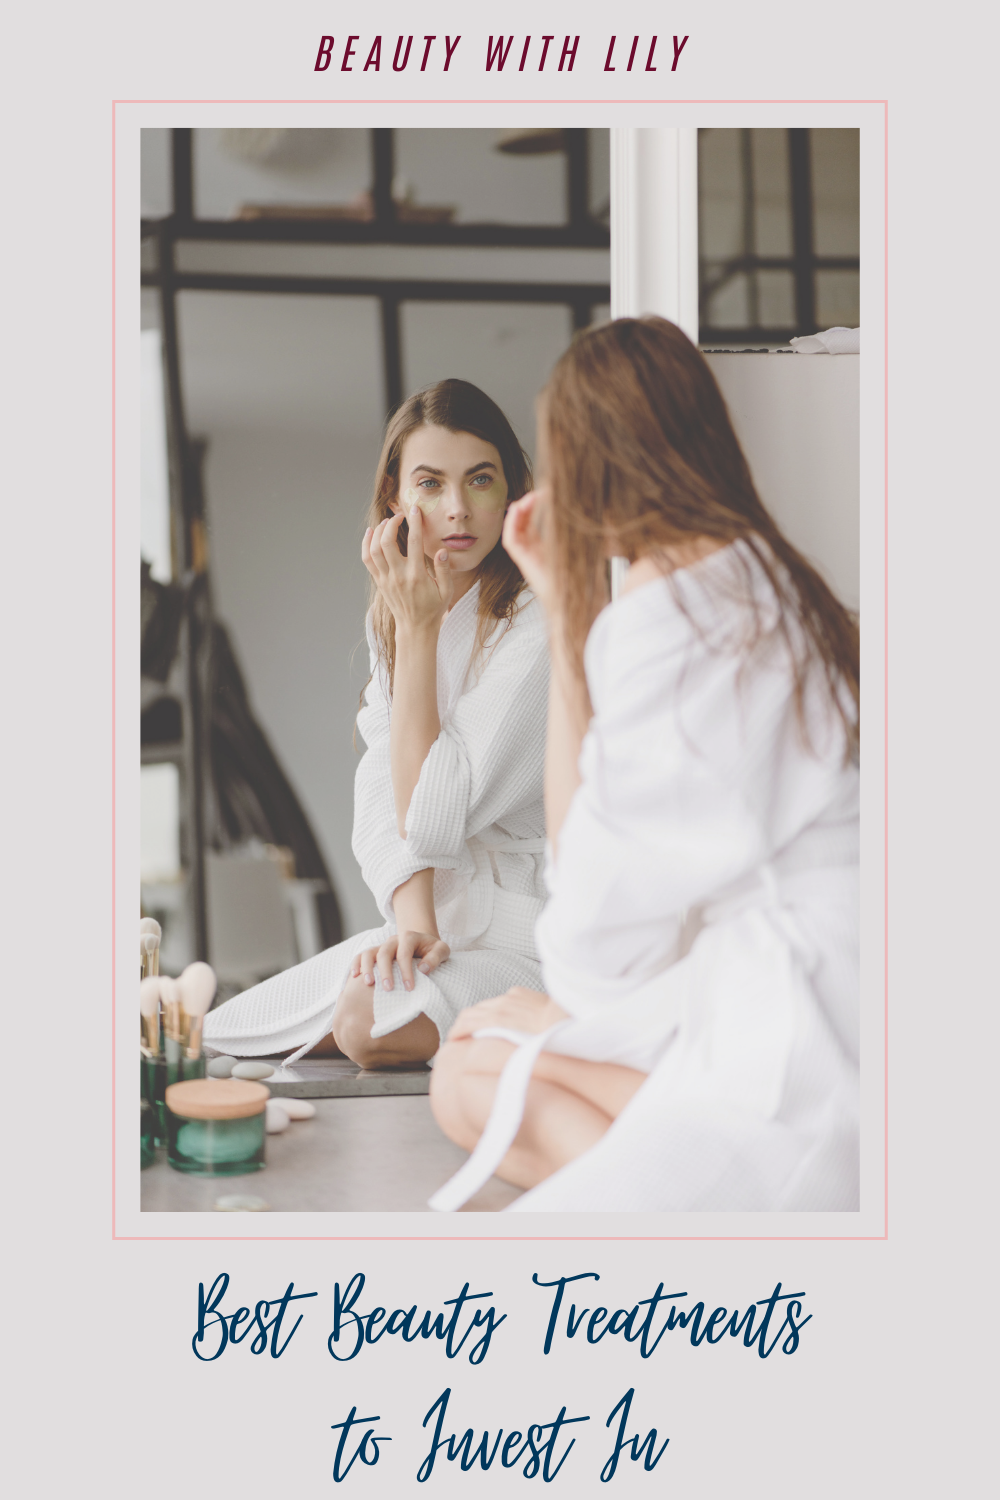 The Best Beauty Treatments to Invest In // Must Do Facials // Spa Days // Microblading // Beauty Treatments To Try // Skincare 101 // Beauty 101 // Makeup 101 // Relaxing Beauty Treatments // Skin Treatments || Beauty With Lily #beautytreatments #skincare